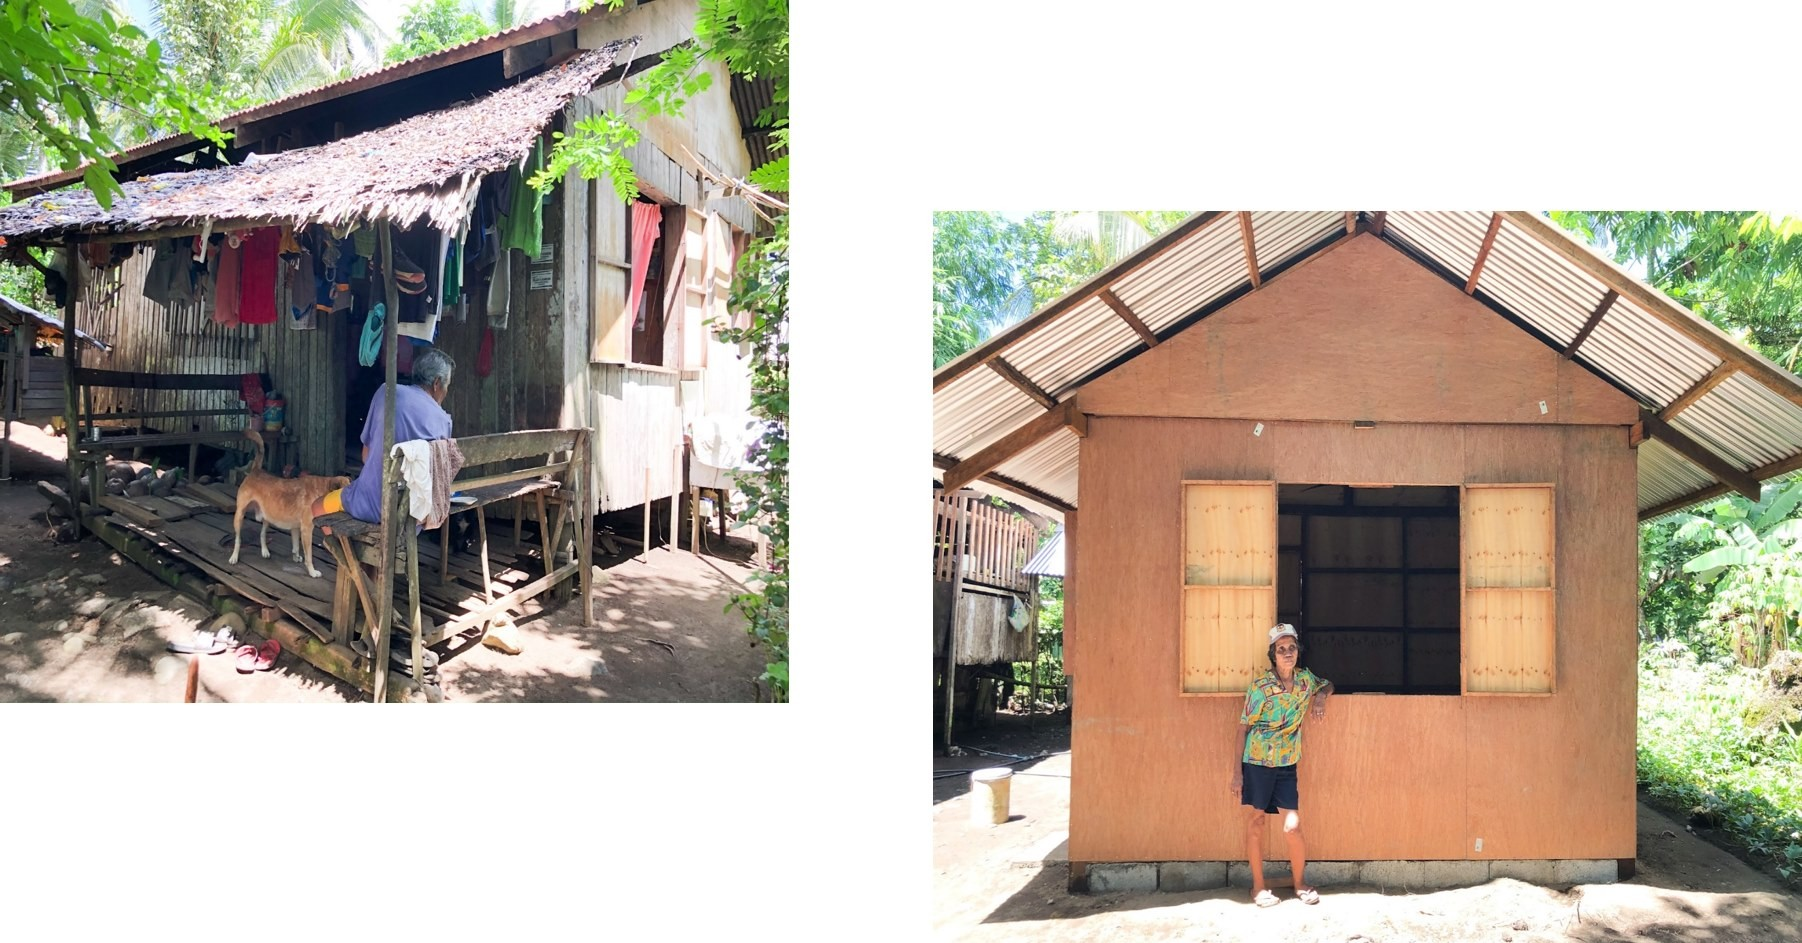 MMDC builds homes for families in Carrascal